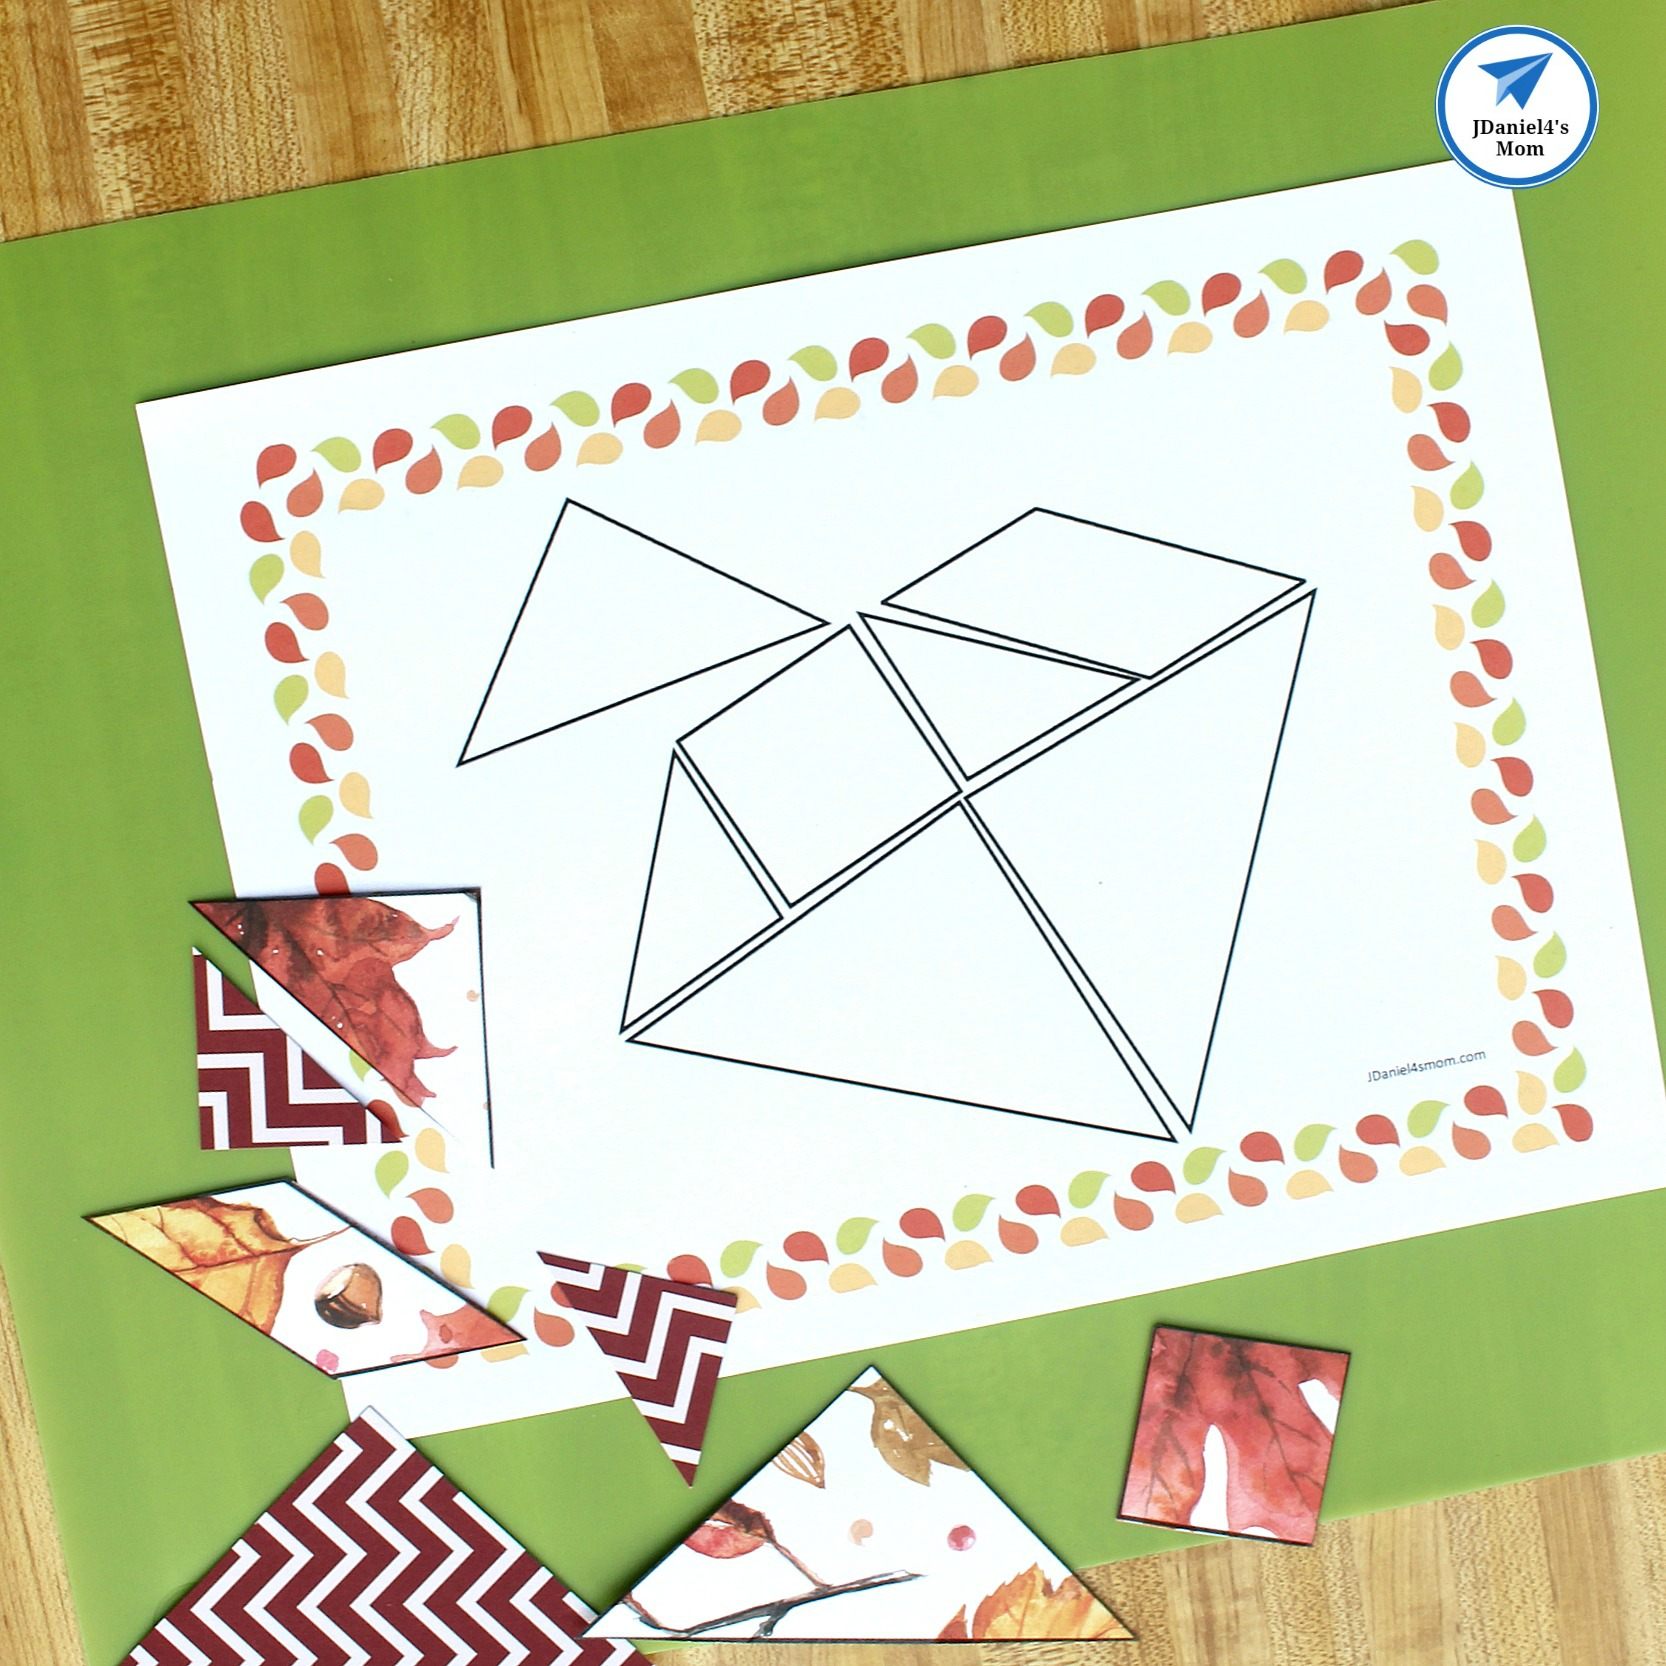 photograph relating to Printable Tangram identify Tumble-Themed Printable Tangram Puzzles - JDaniel4s Mother